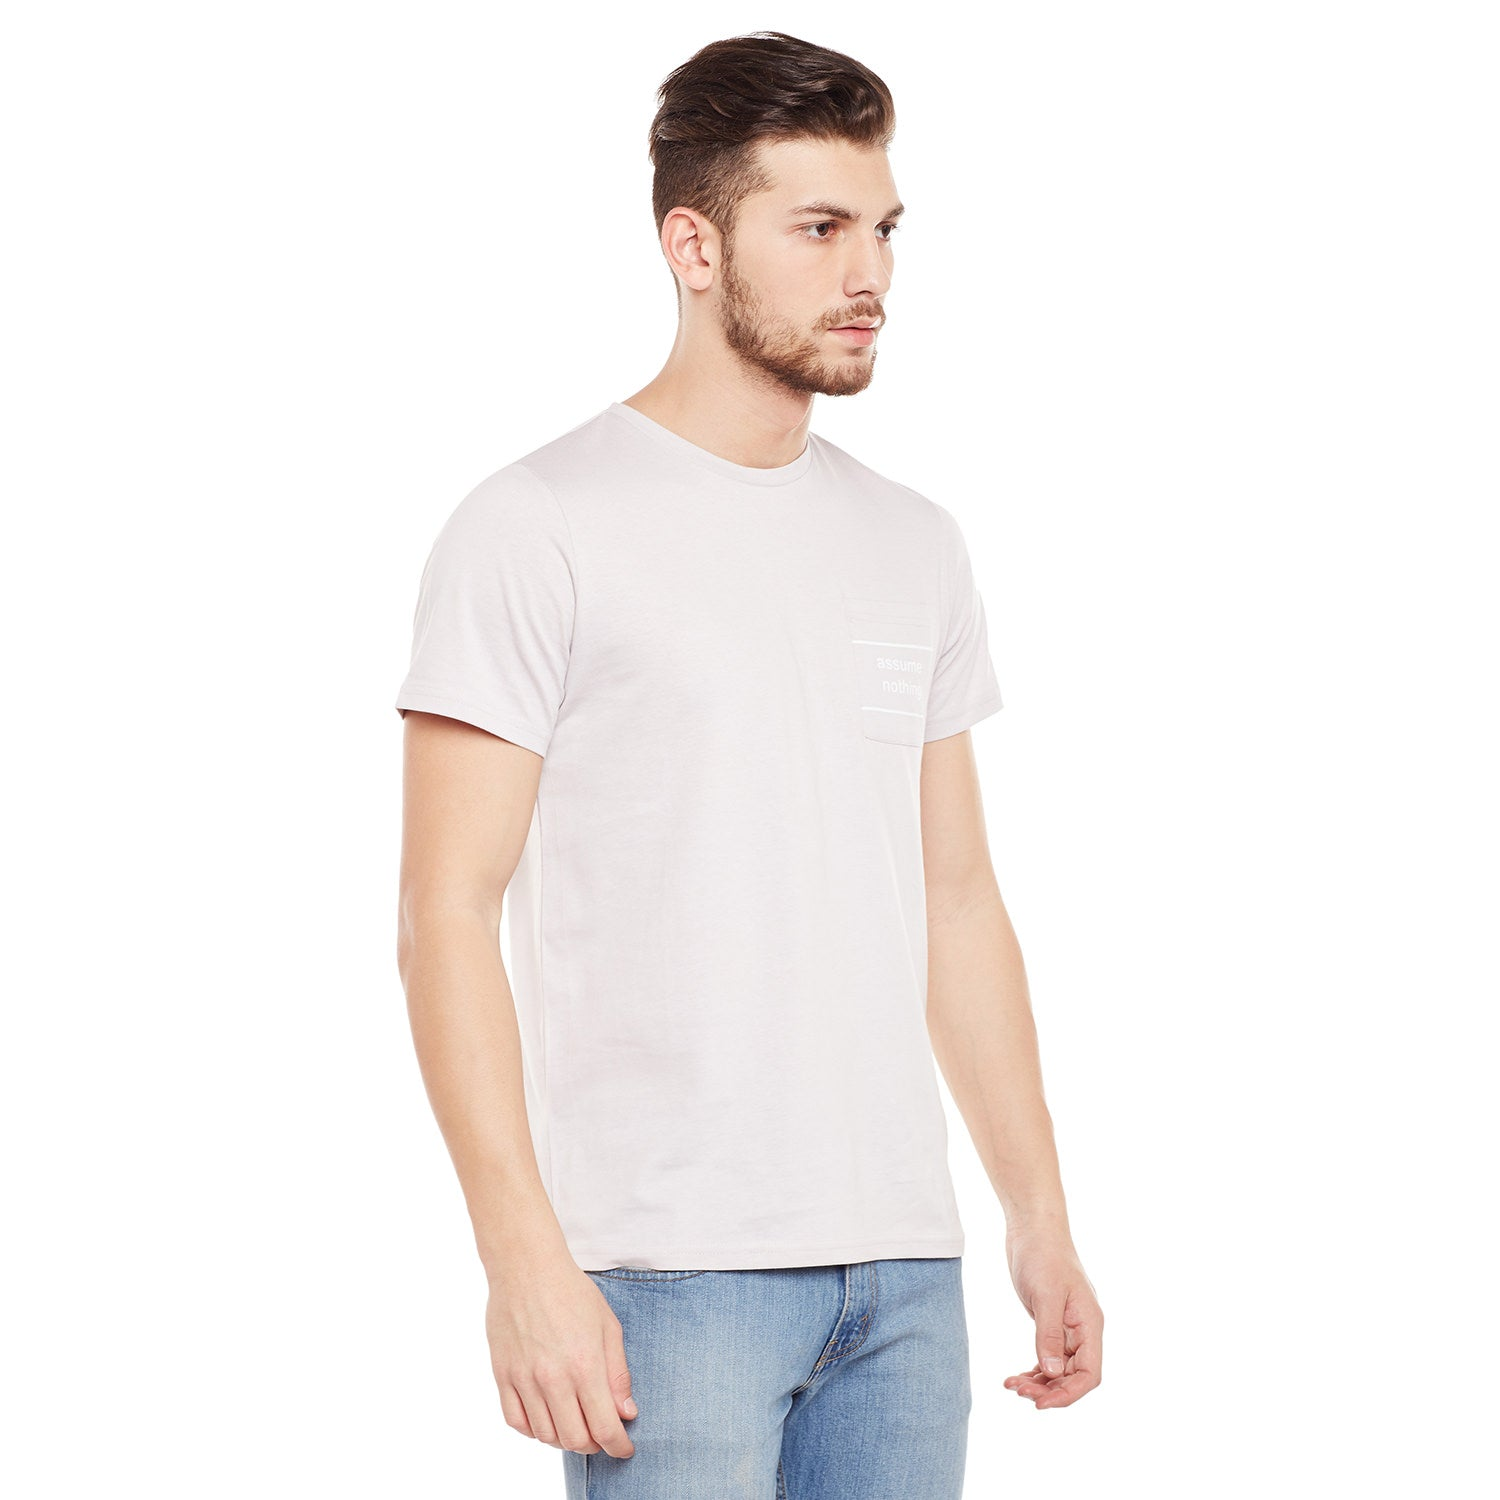 Atorse Mens Half Sleeves T-Shirt Ombre Dyed With Chest Print